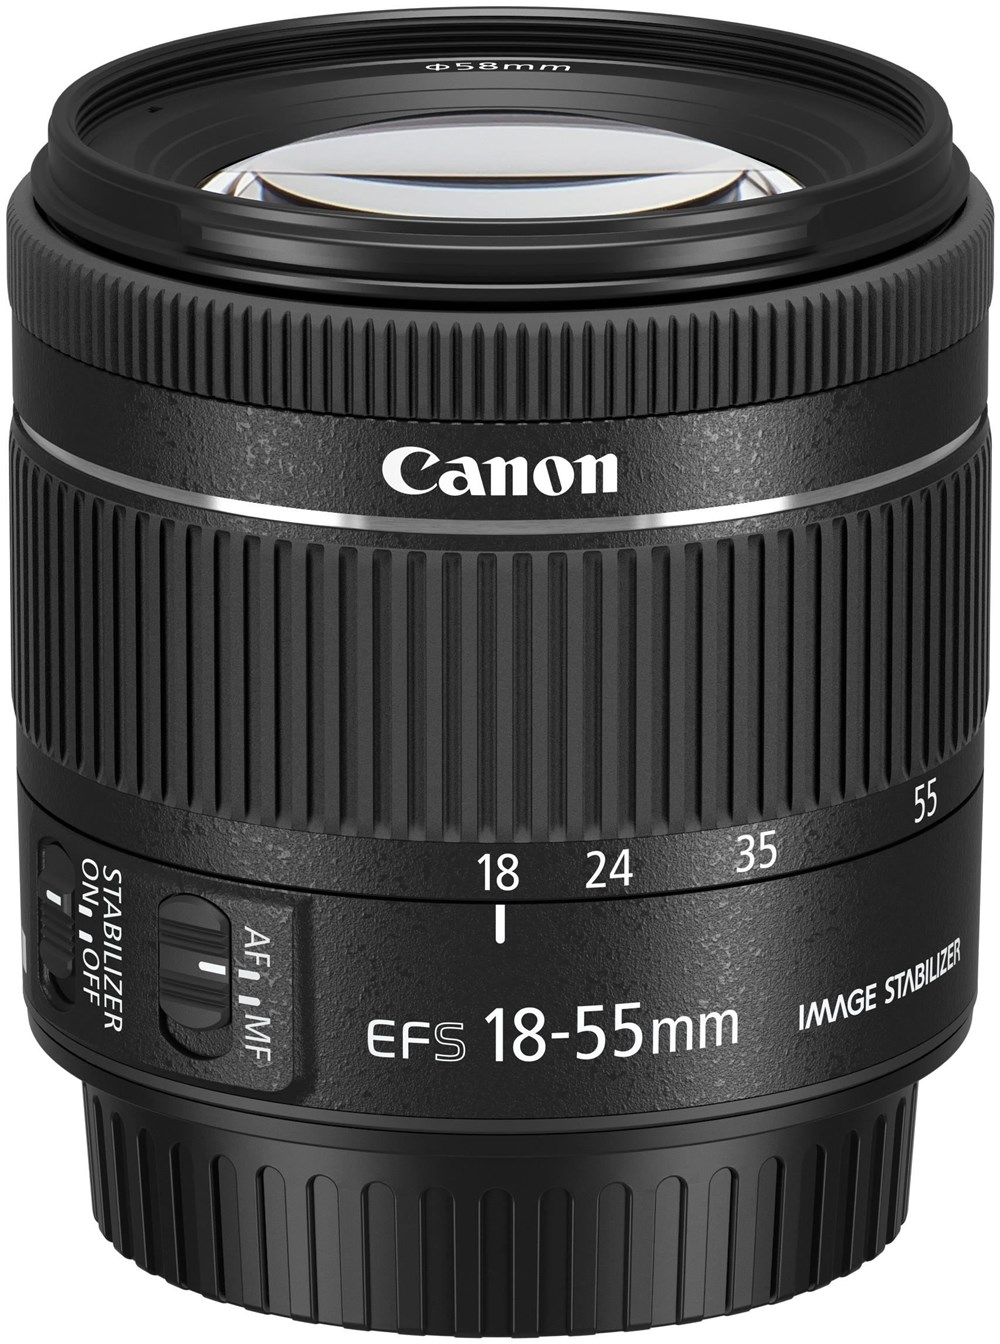 canon ef s 18 55mm f 4 0 5 6 is stm standard zoom objektiv kameraobjektive computeruniverse. Black Bedroom Furniture Sets. Home Design Ideas